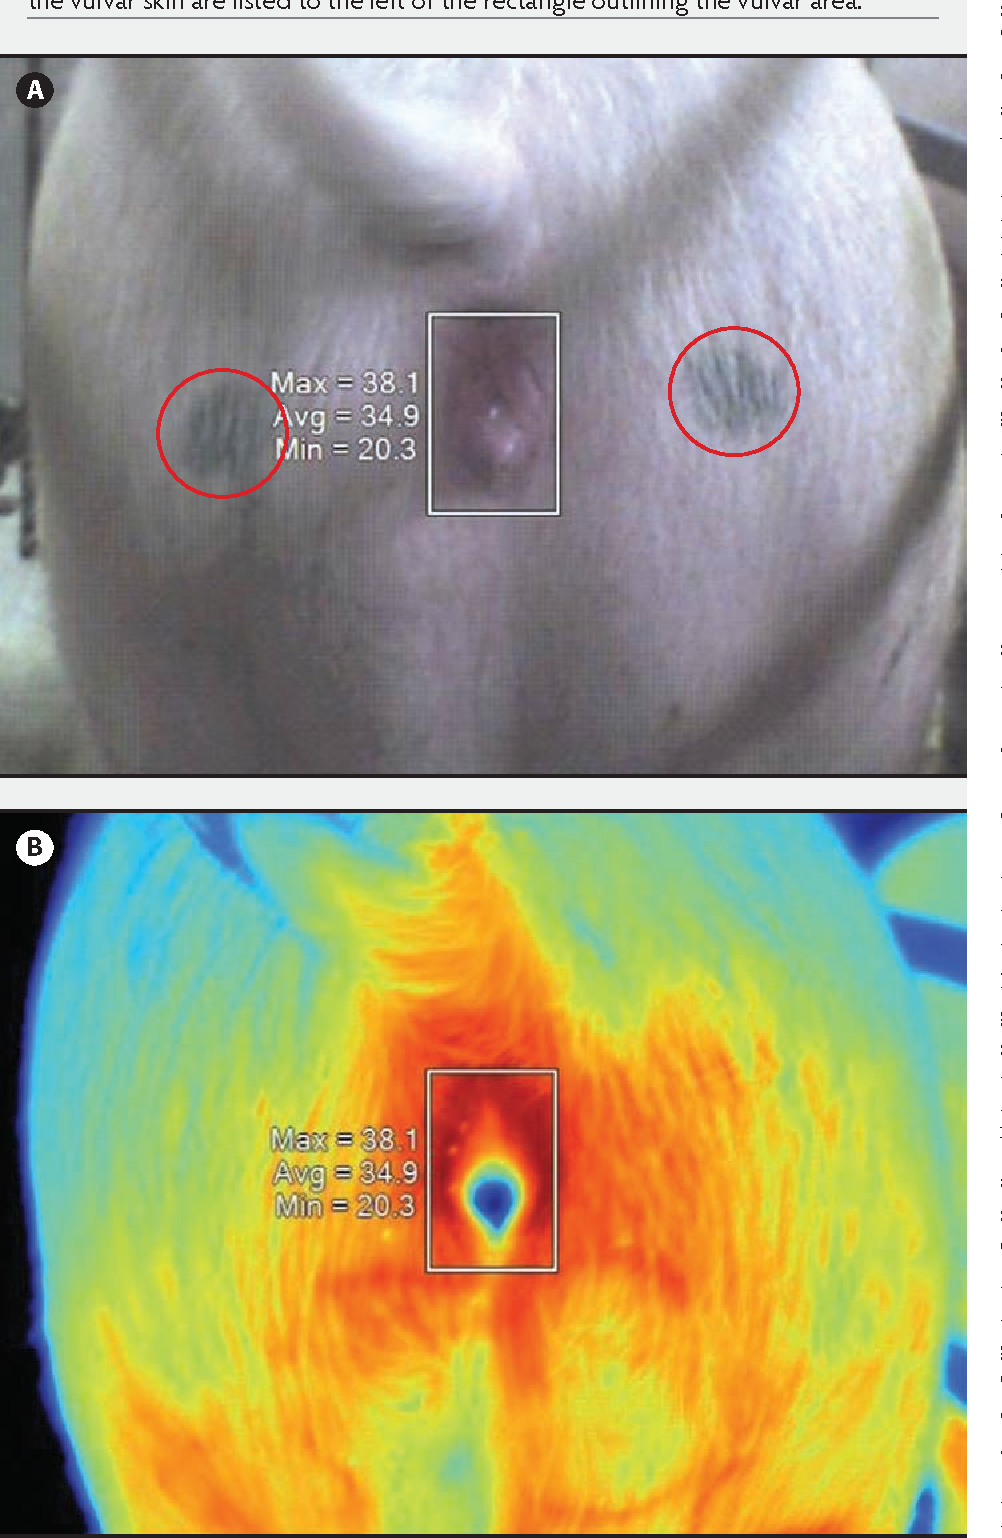 Figure 1 from Vulvar skin temperature changes significantly ...